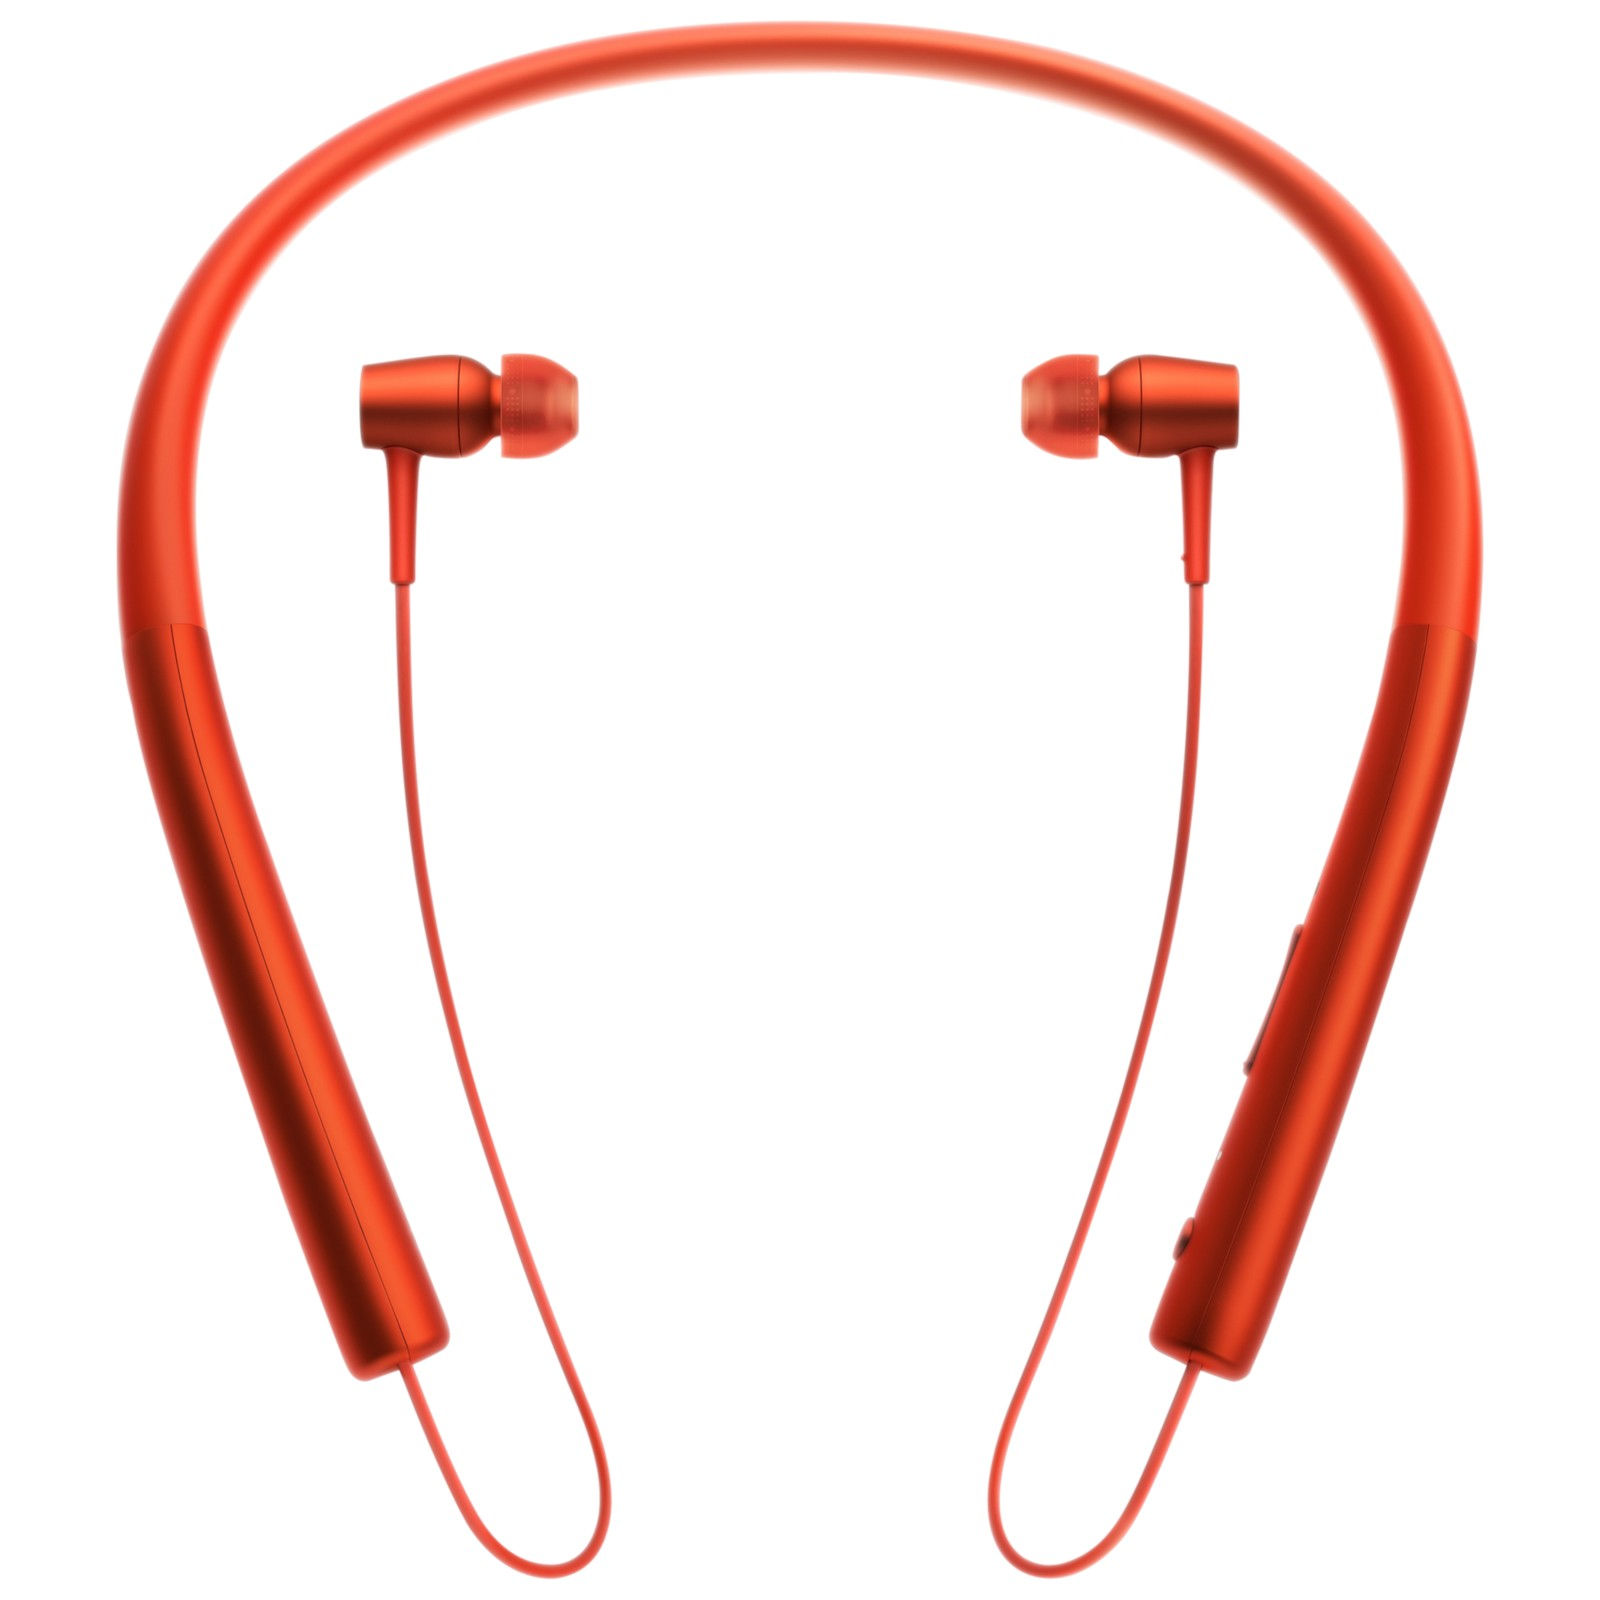 Sony MDR-EX750BT h.ear in Wireless High Resolution In-Ear Headphones with NFC One-Touch Cinnabar Red